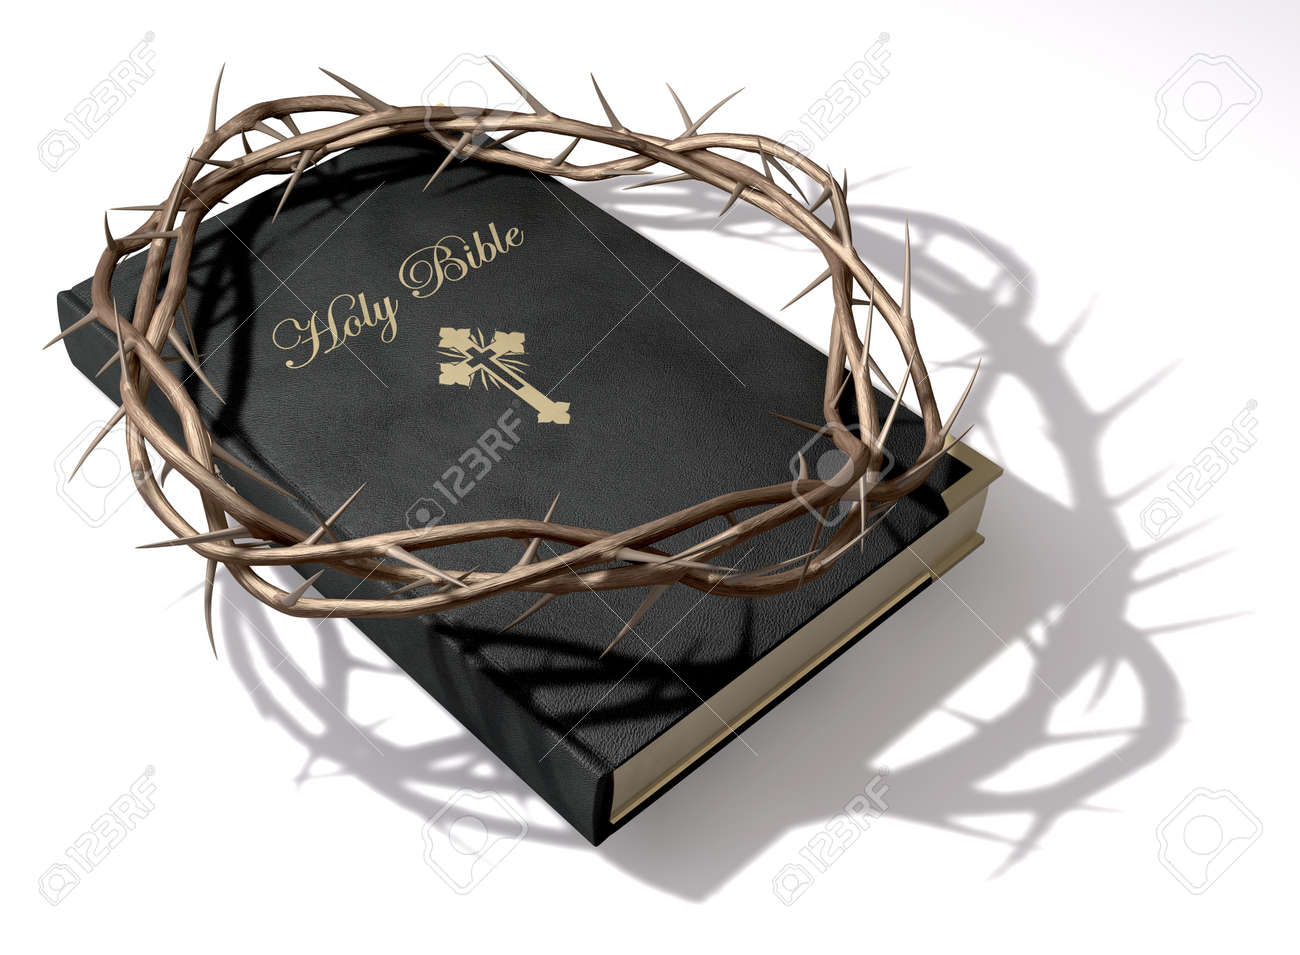 A black leather bible with a gold inscription with a crown of thorns on top of it on an isolated background Stock Photo - 17794199